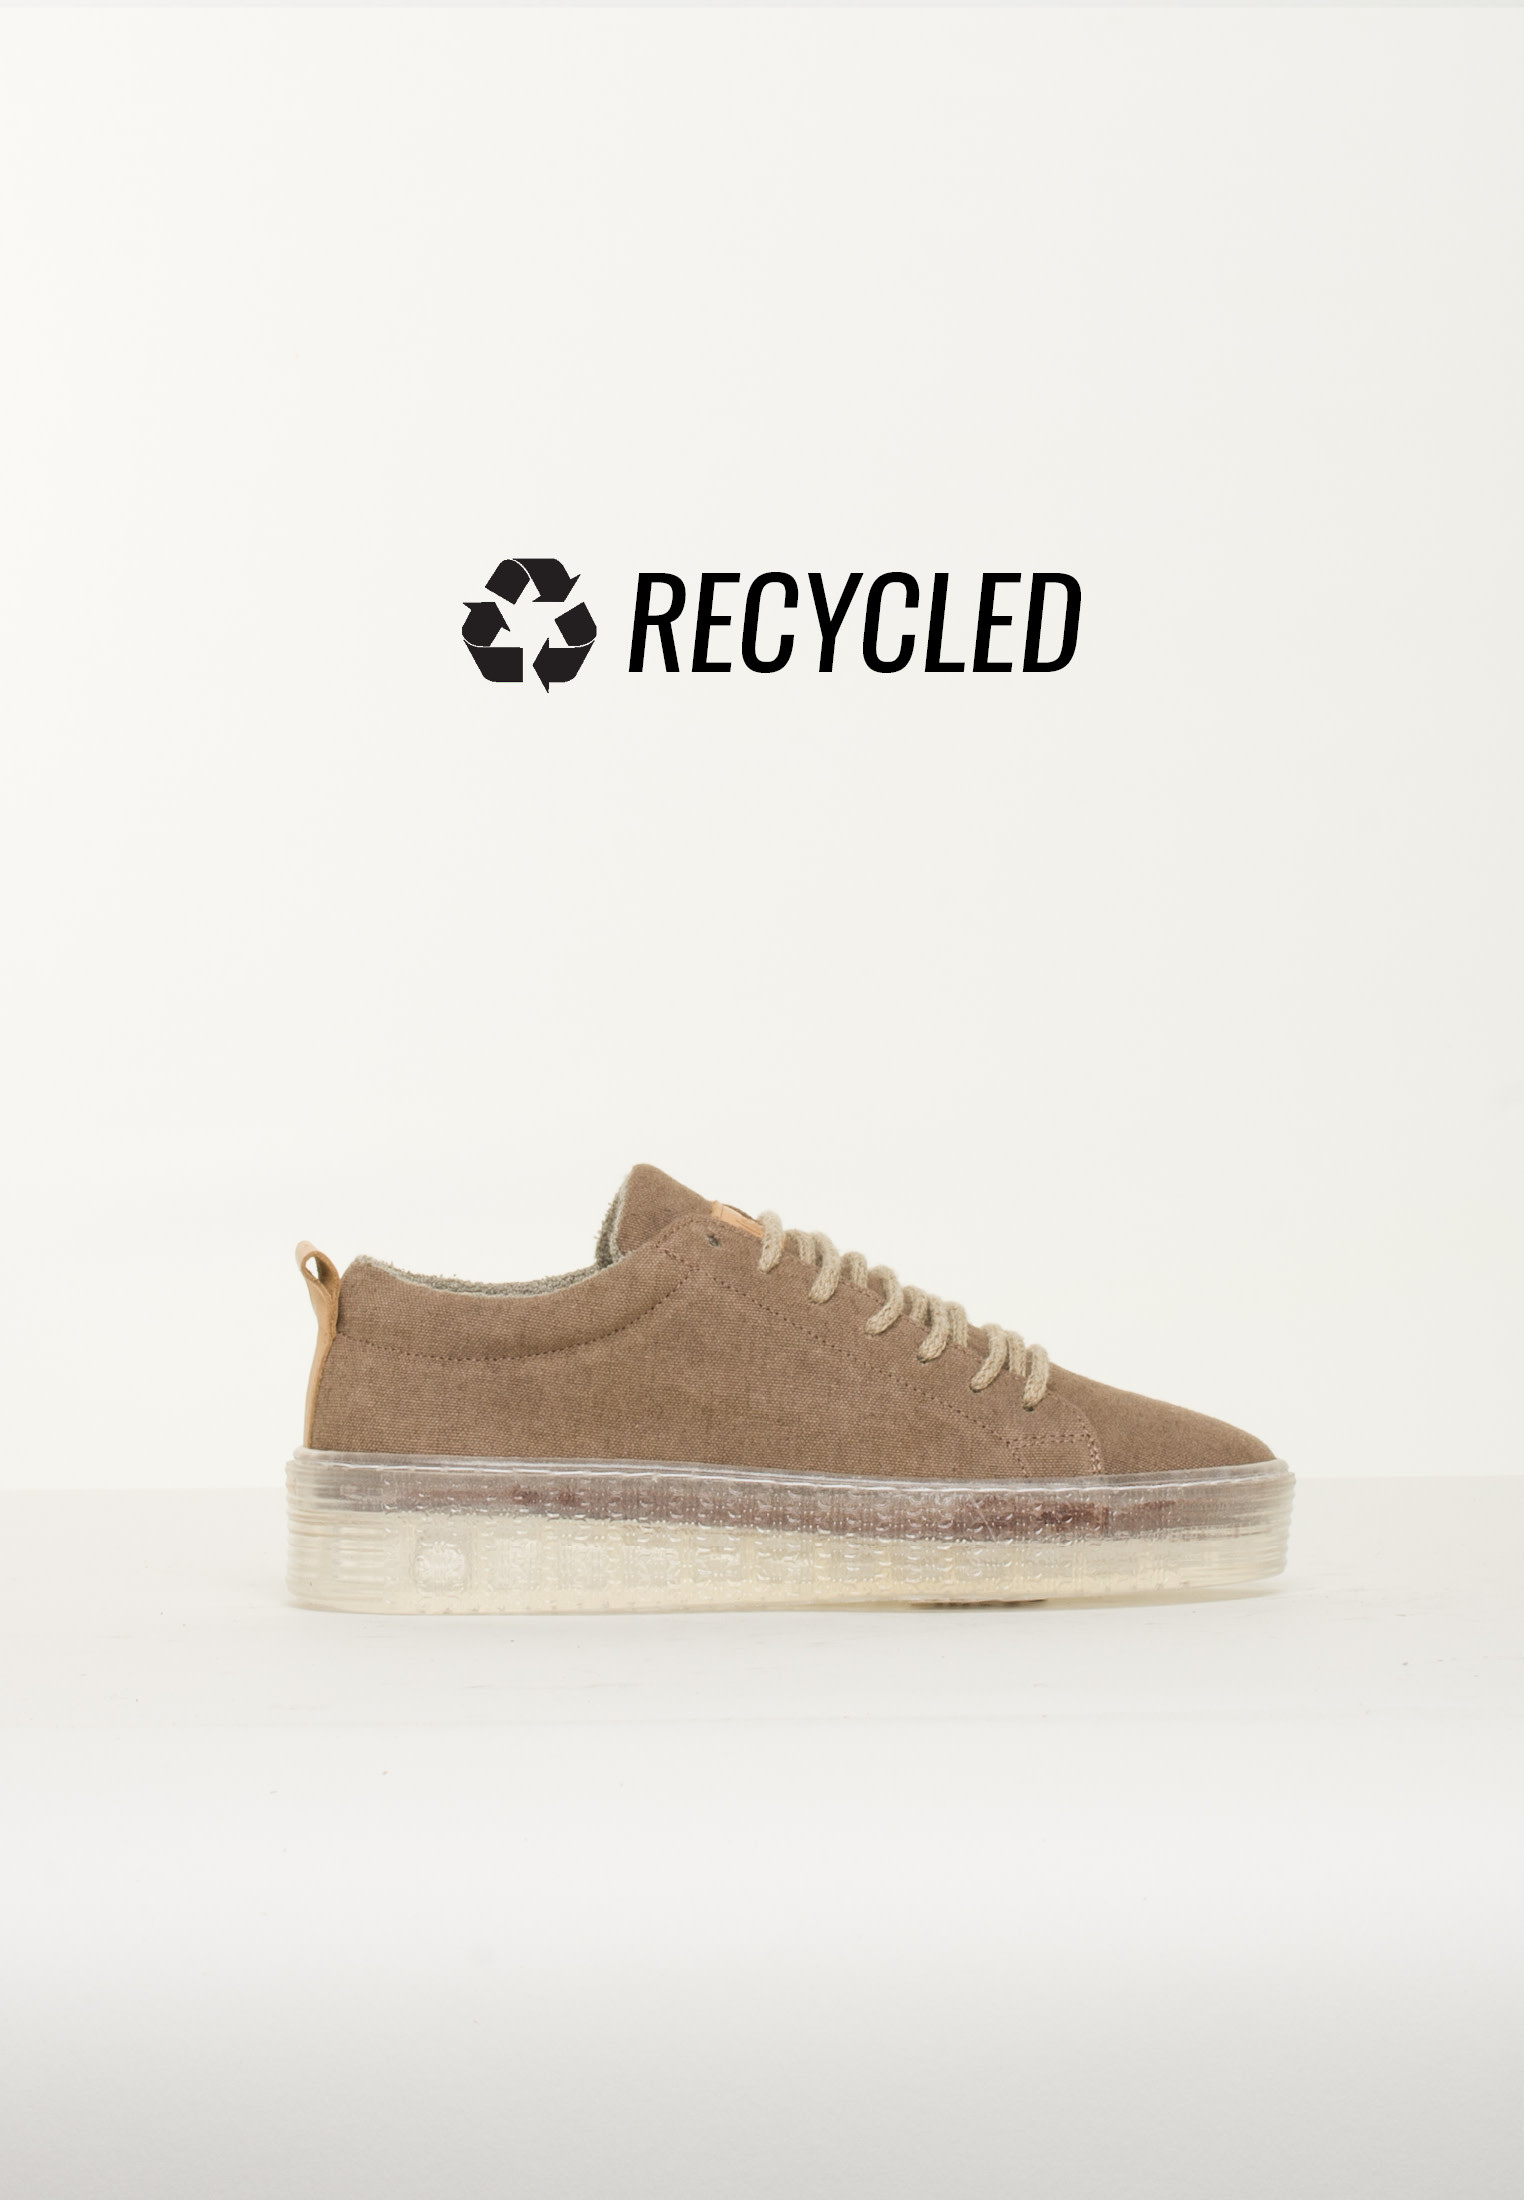 BLUEONBLUE Greenify - Oceania Recycled Sneakers Vintage Brown